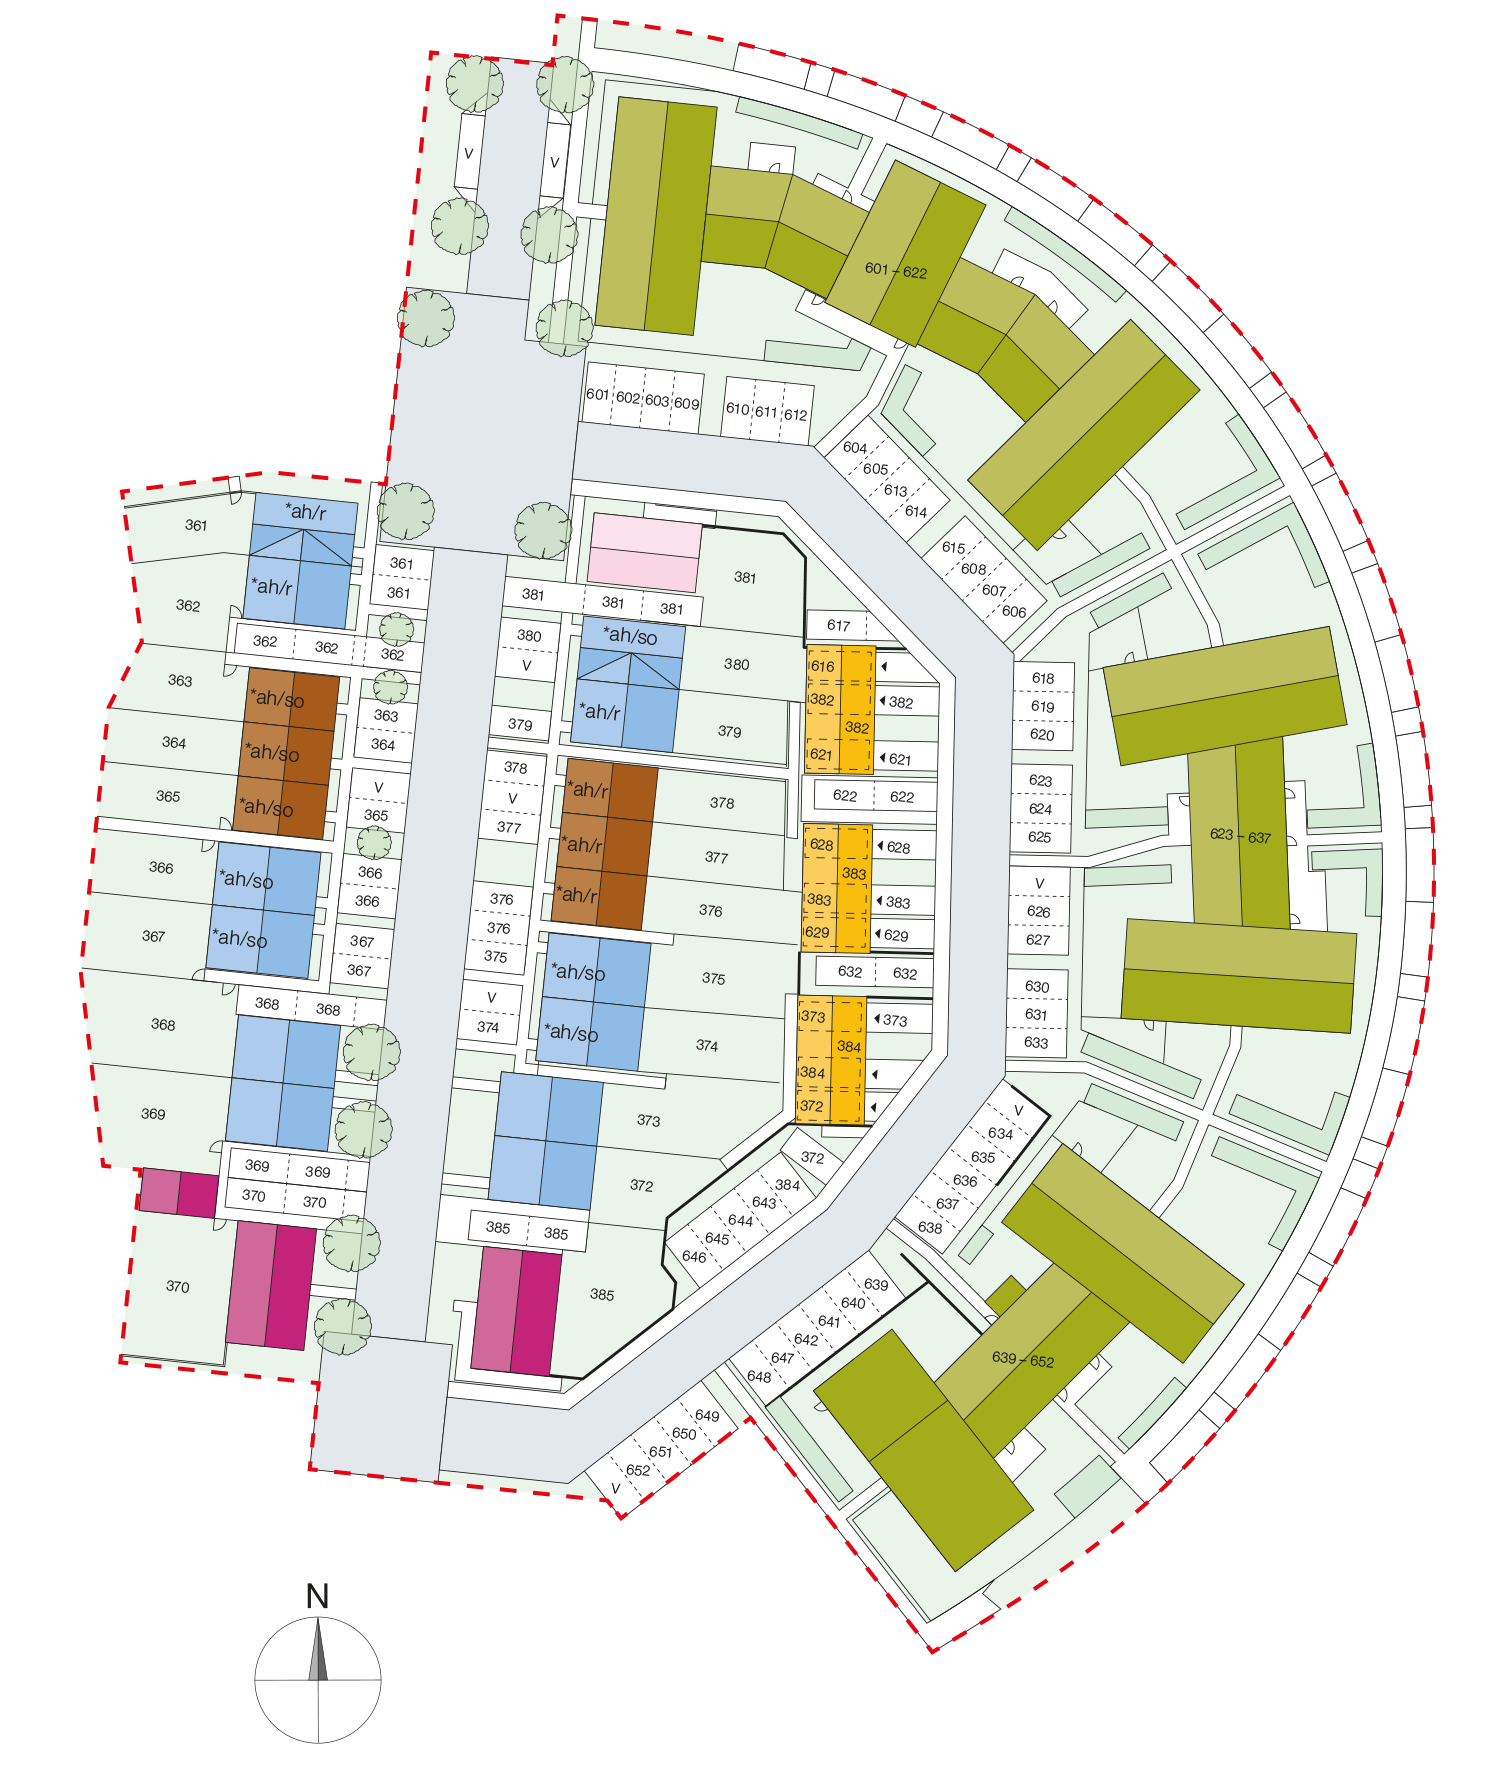 Taylor-Wimpey-Autumn-Rise-new-development-plan